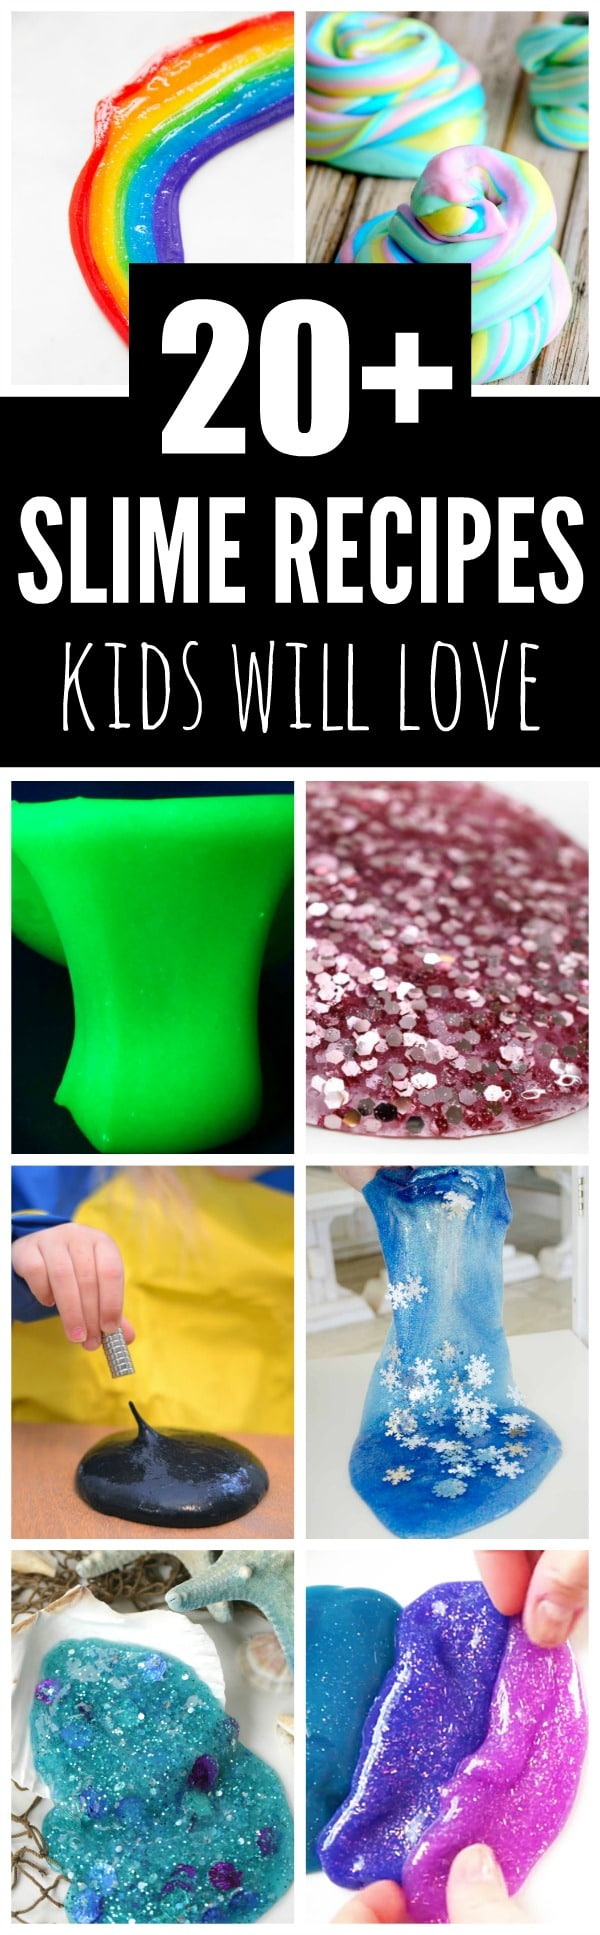 Homemade Slime Recipes Kids Will Love - Pretty My Party